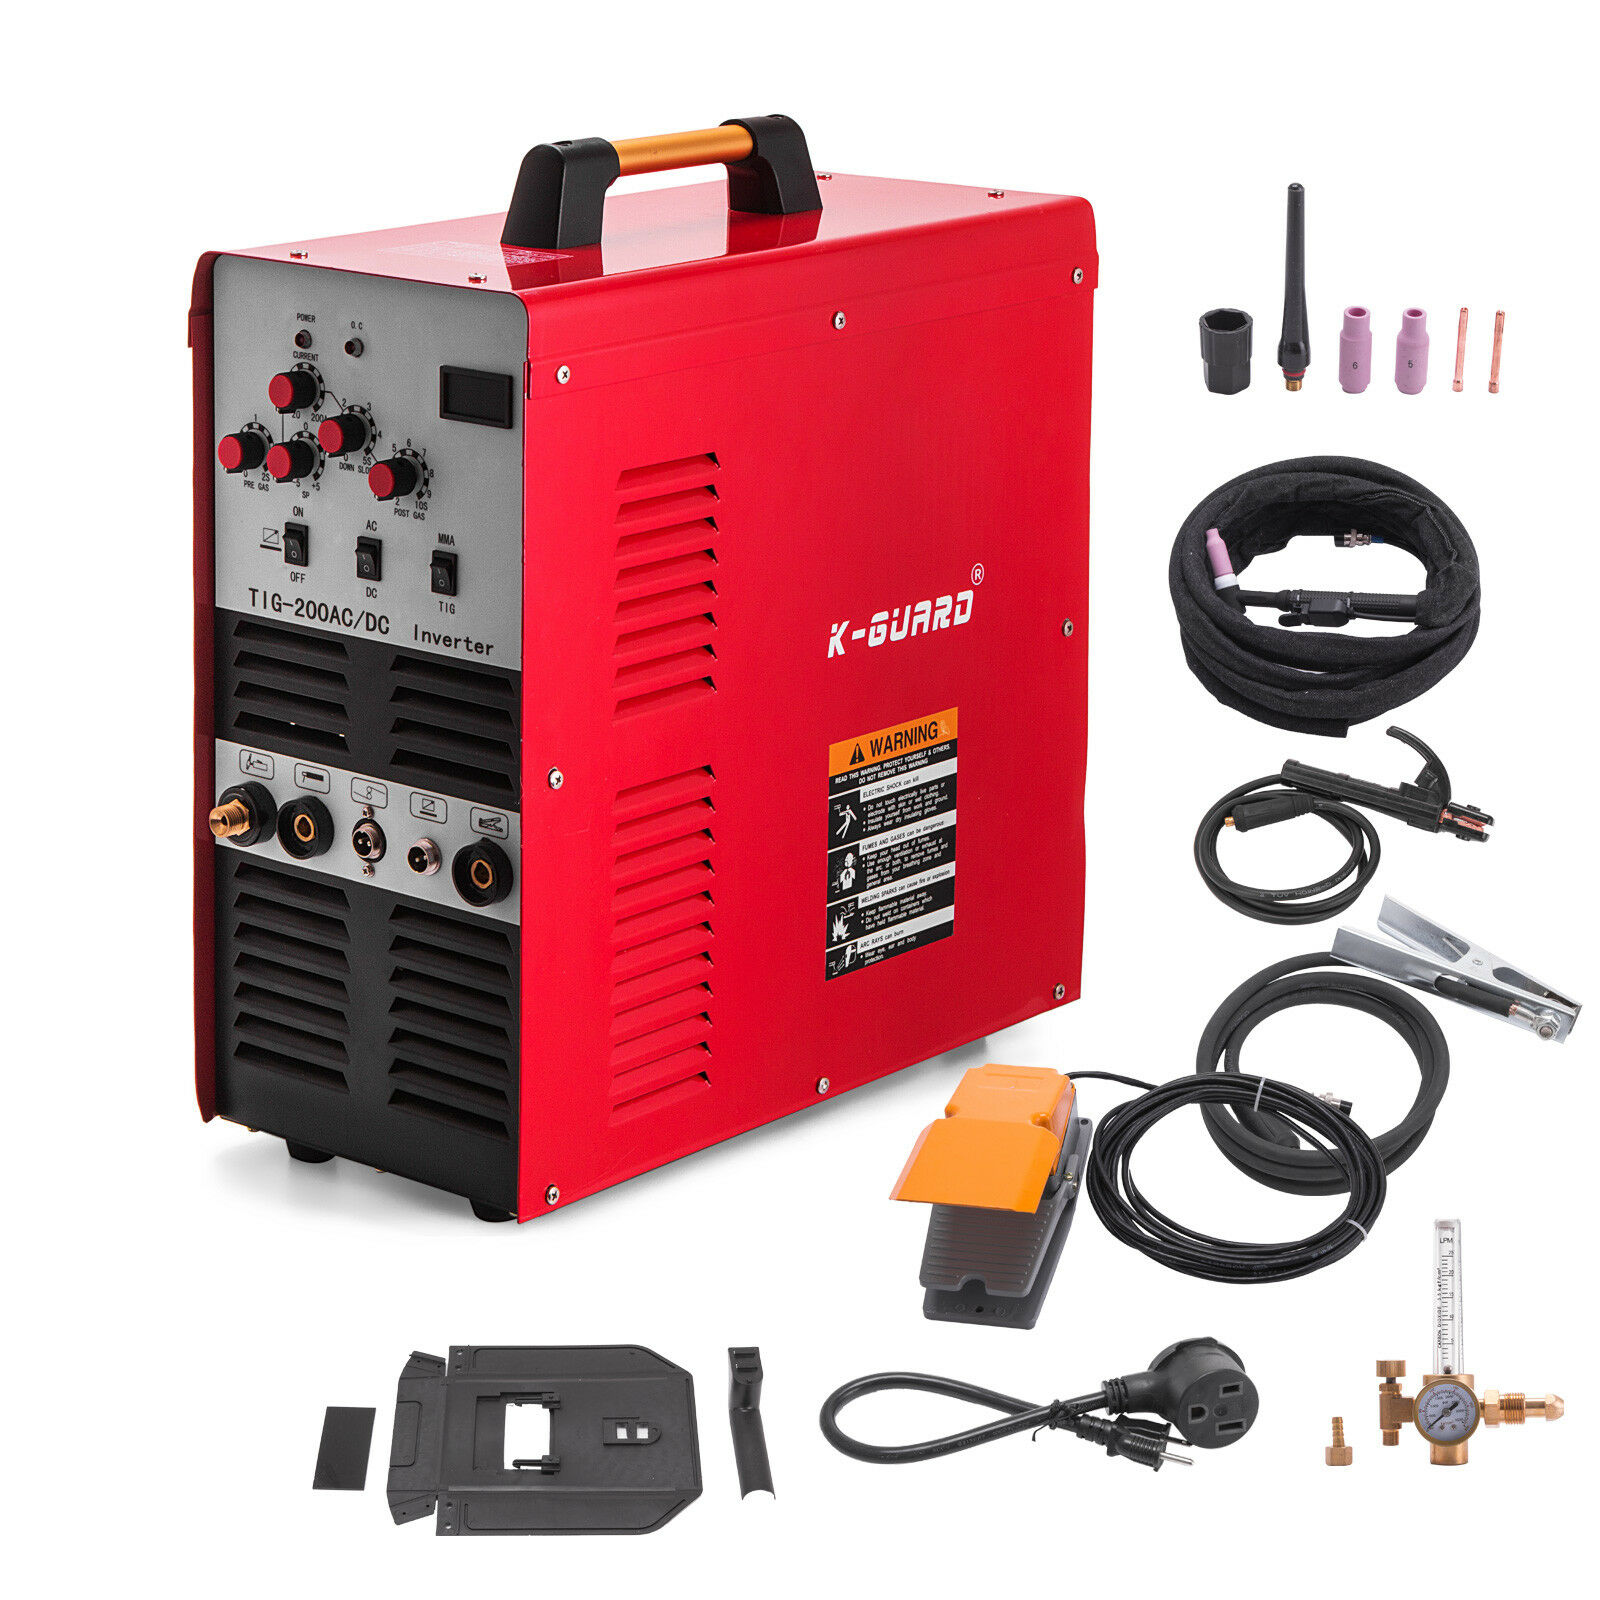 TIG/Stick Square Wave <font><b>Inverter</b></font> AC/DC Aluminum <font><b>200</b></font> Amp Welder IGBT Pulse welding machine 110/220V with free shipping image